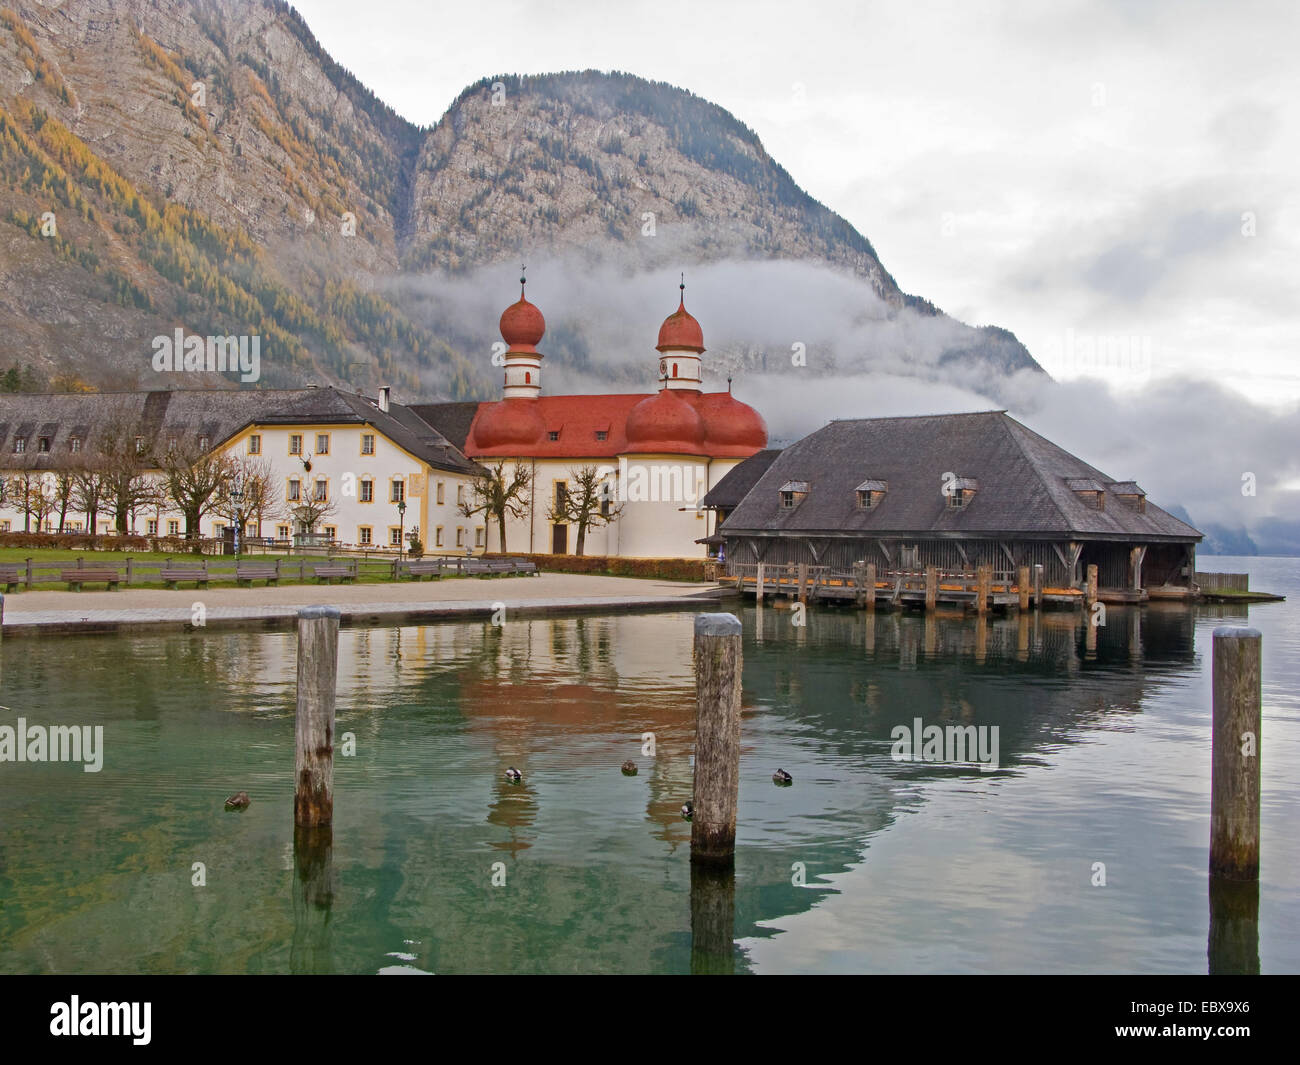 chapel St. Bartholomae with hunting lodge and fishing house in autumn, Germany, Bavaria, Koenigssee - Stock Image